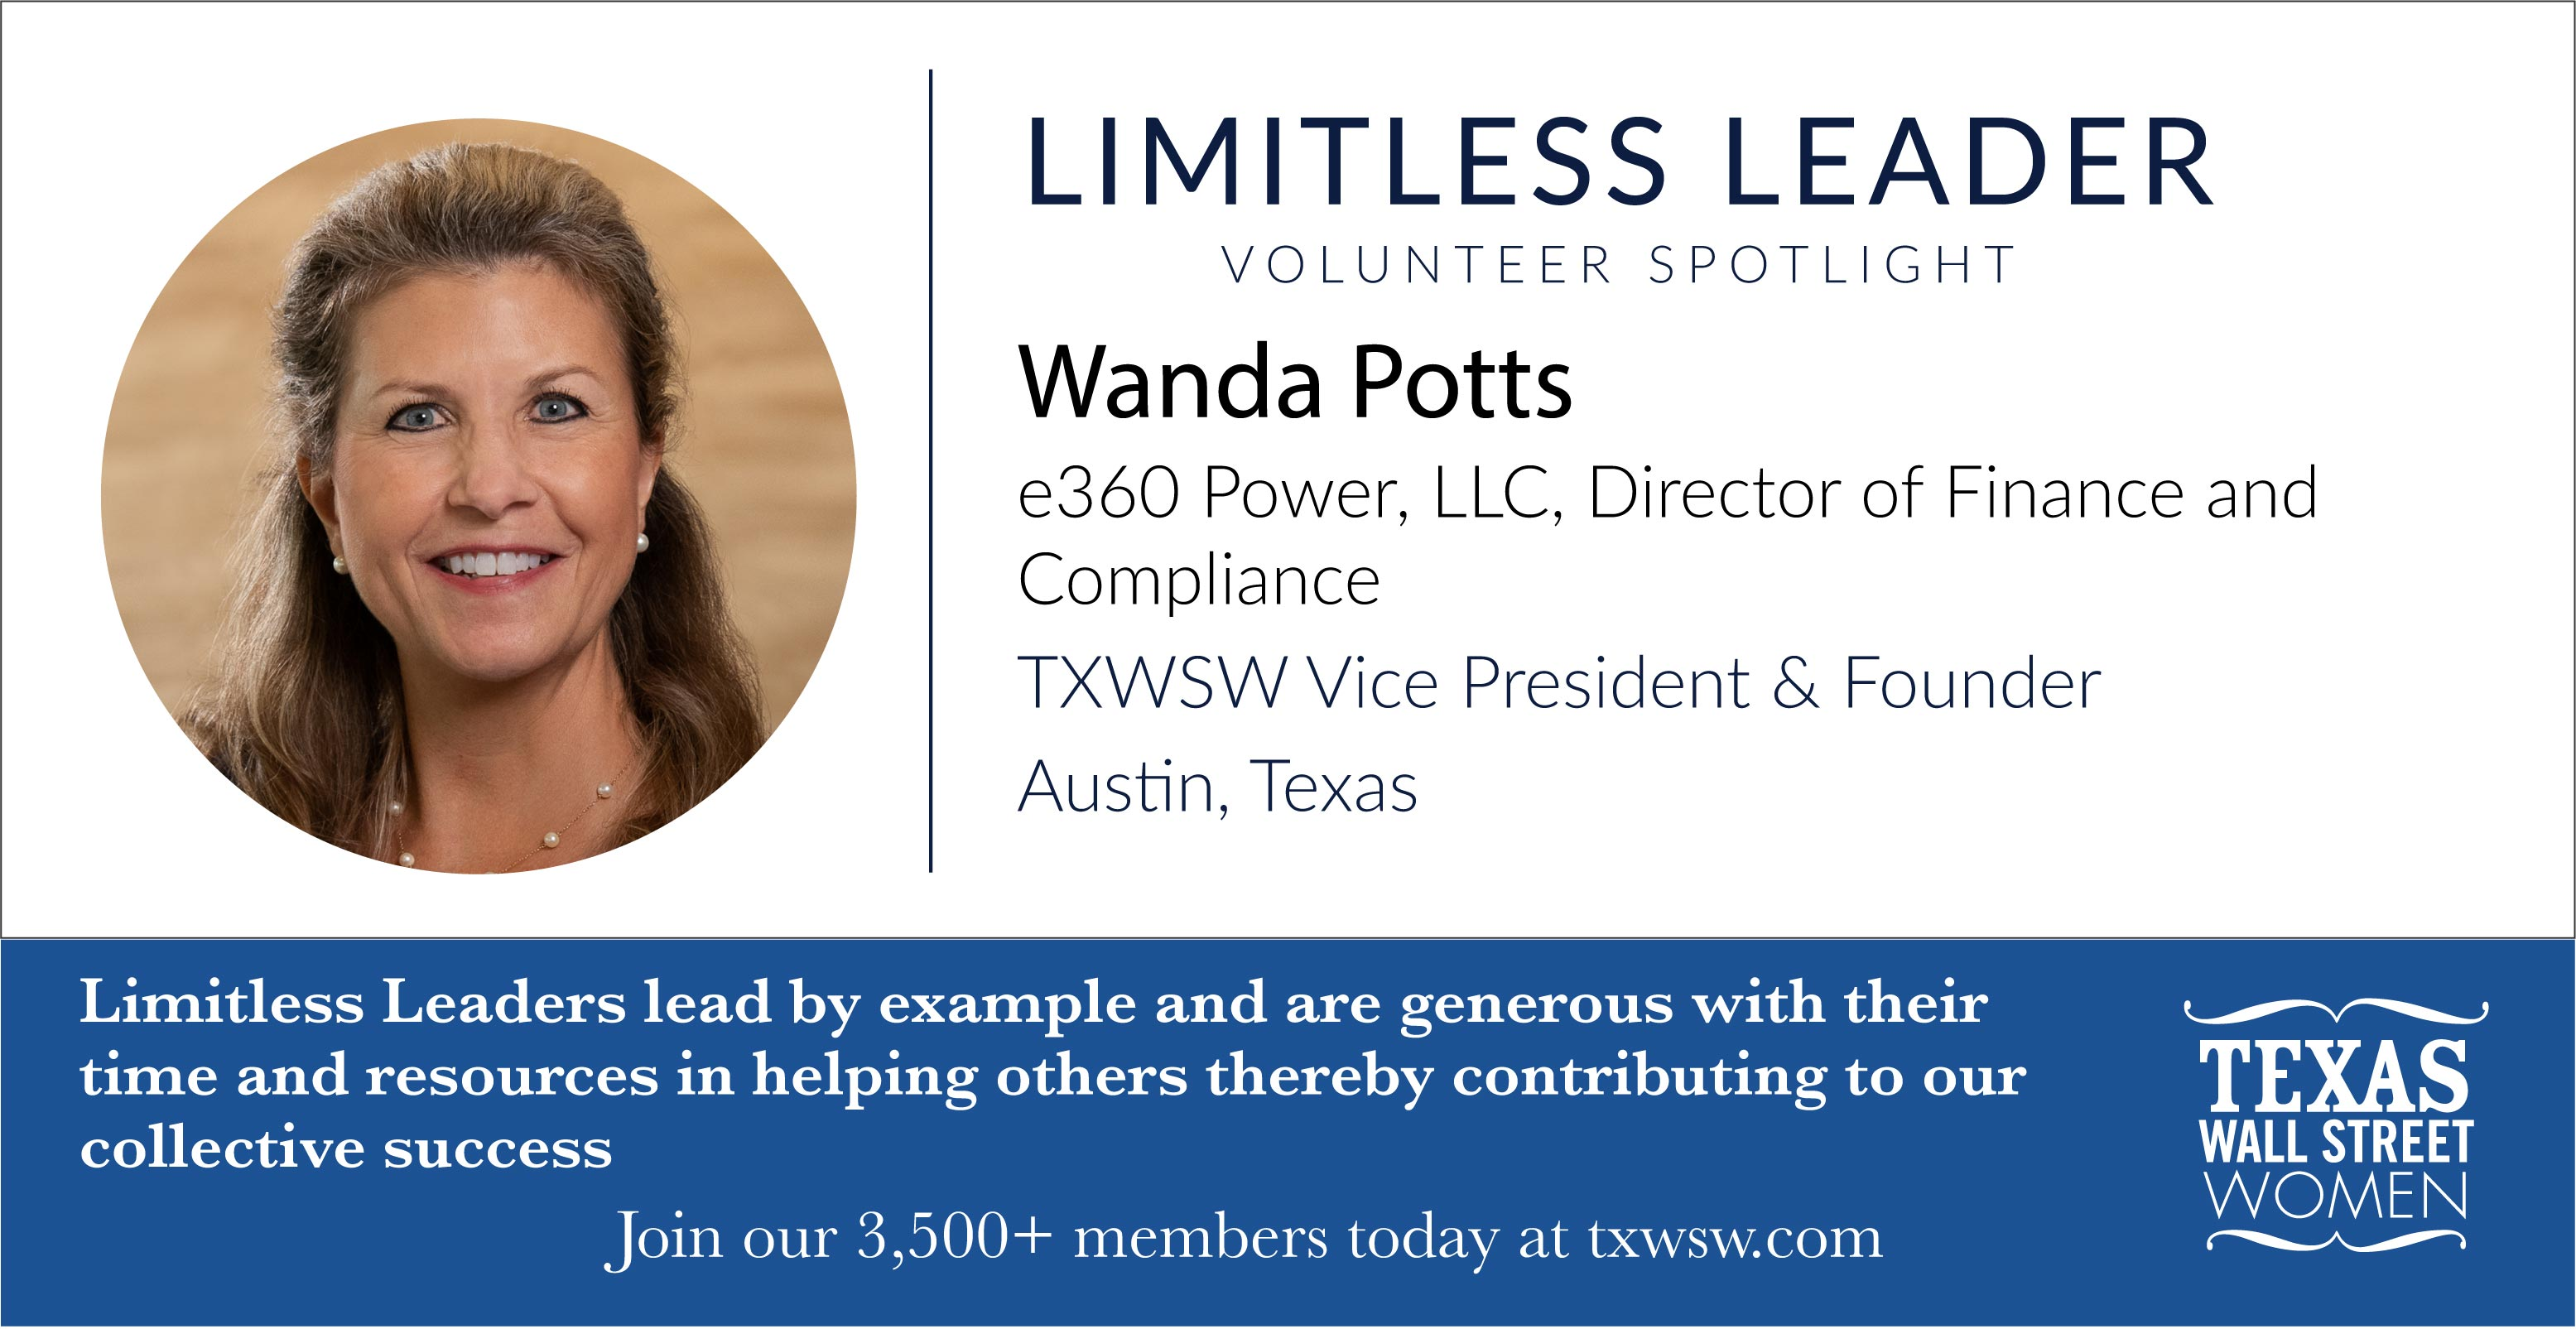 Wanda Potts Limitless Leader